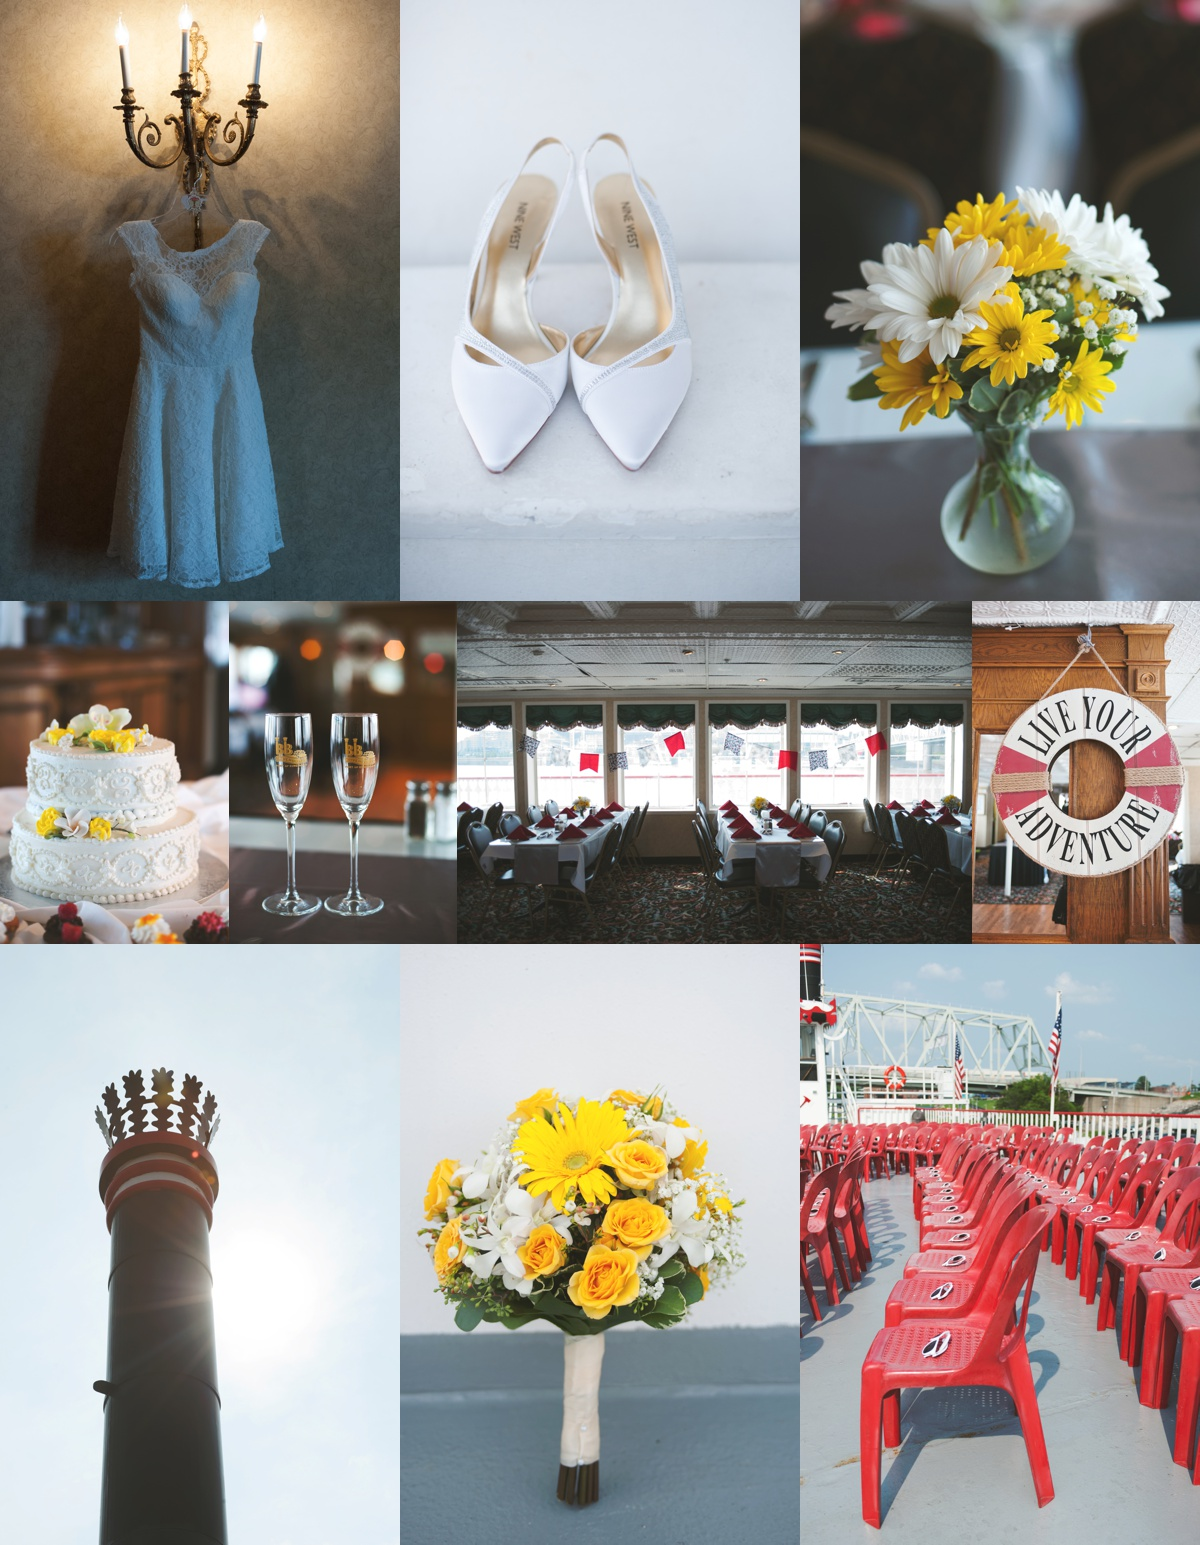 b&briverboatwedding